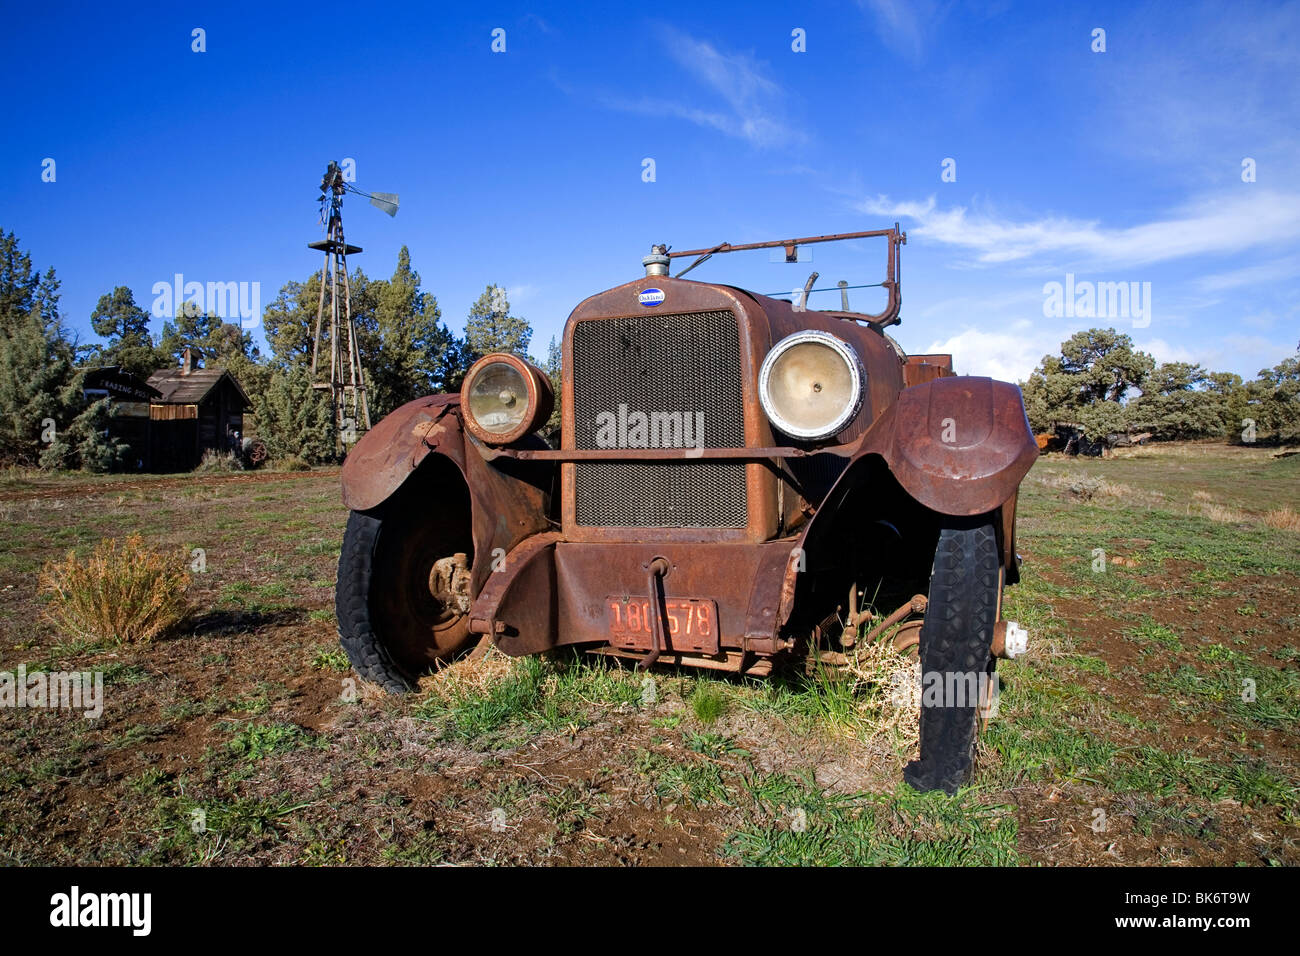 An Oakland classic automobile car made between 1909 and 1931 by the Oakland Motors Division of General Motors Corporation - Stock Image